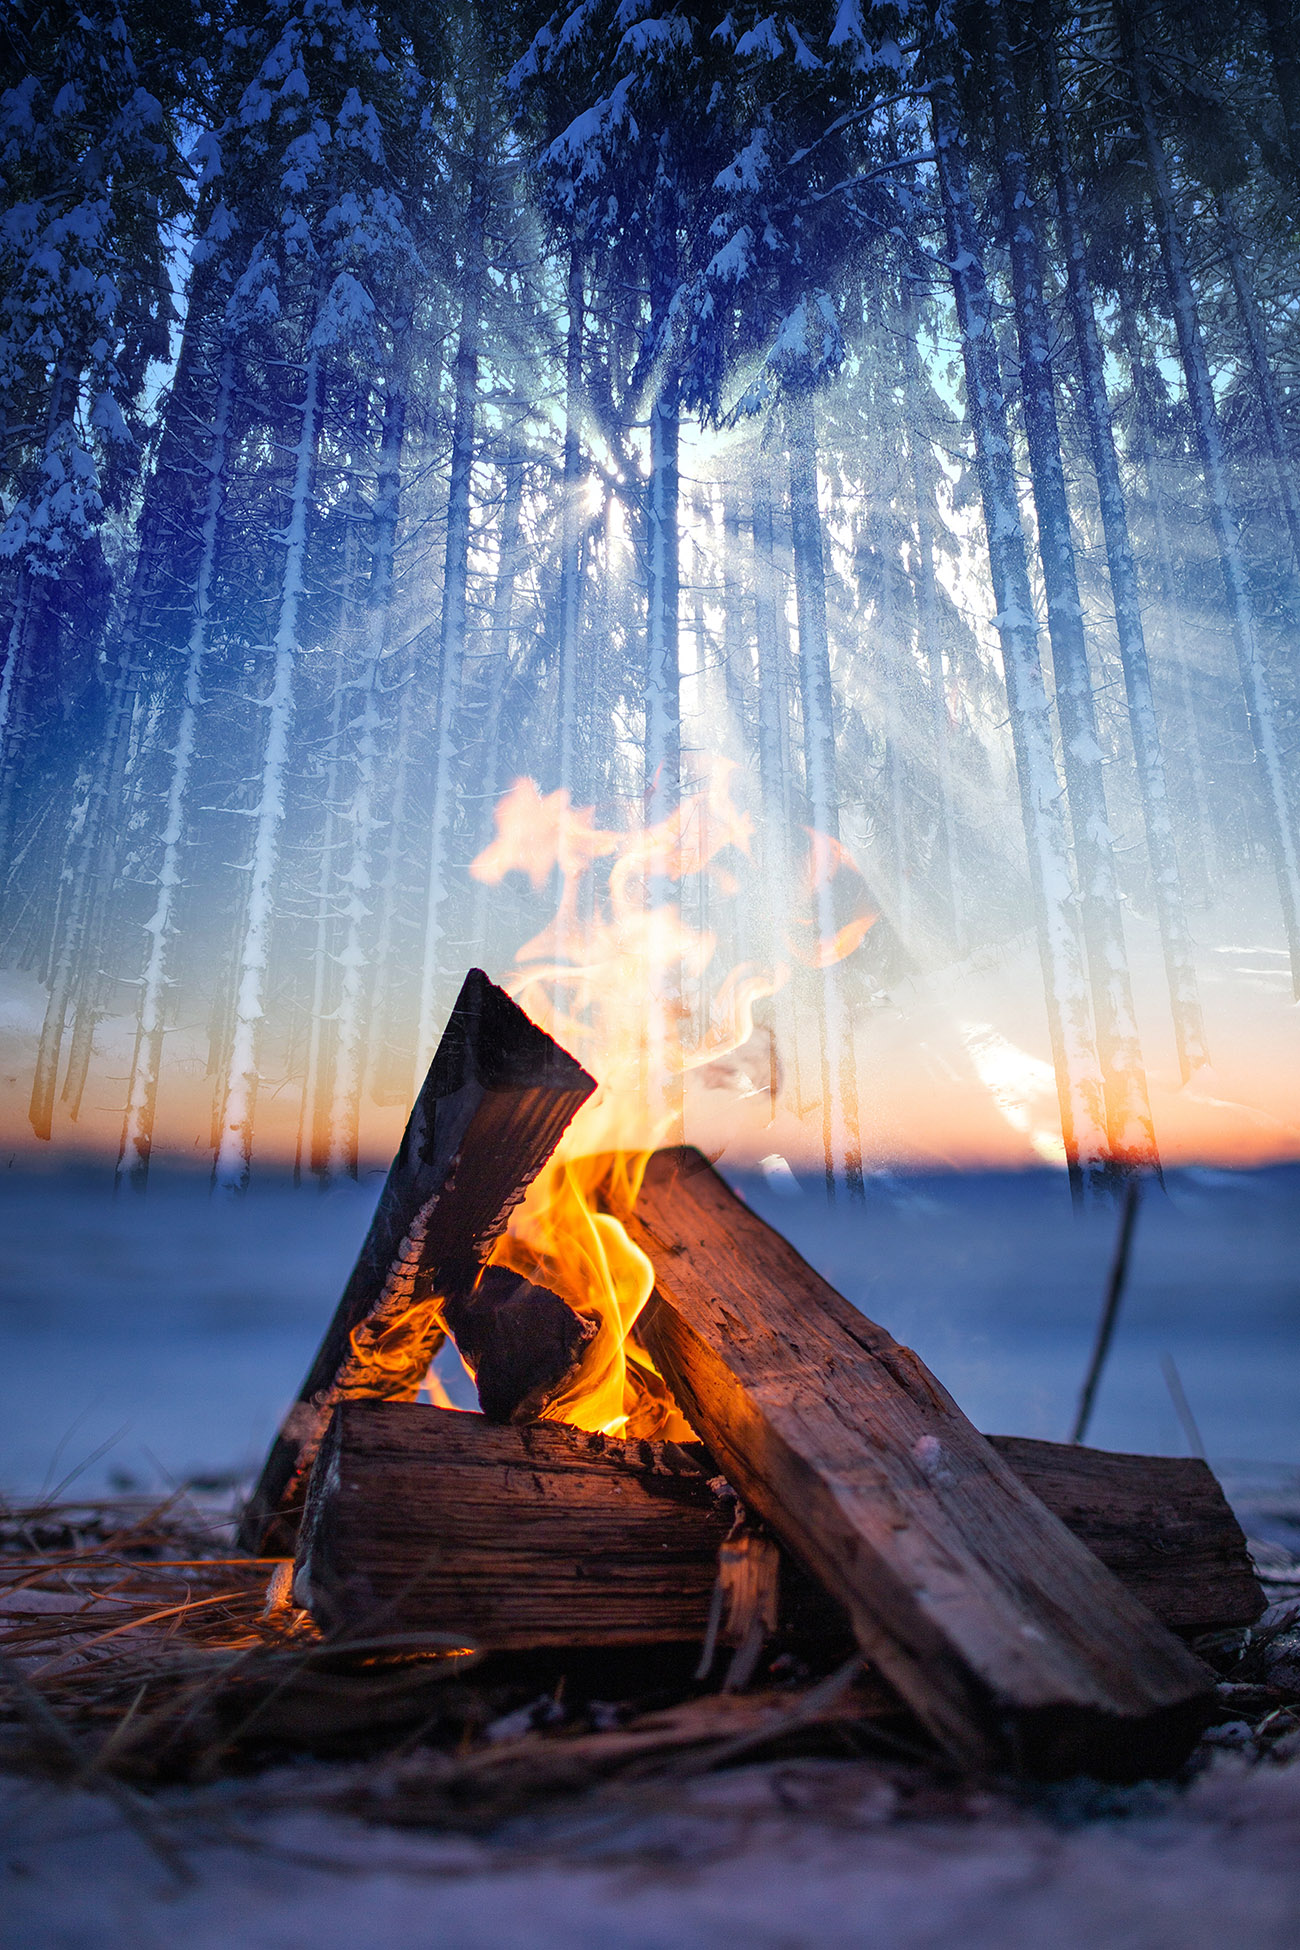 Wintery Wood Fire 01 - Royalty-Free Stock Imagery